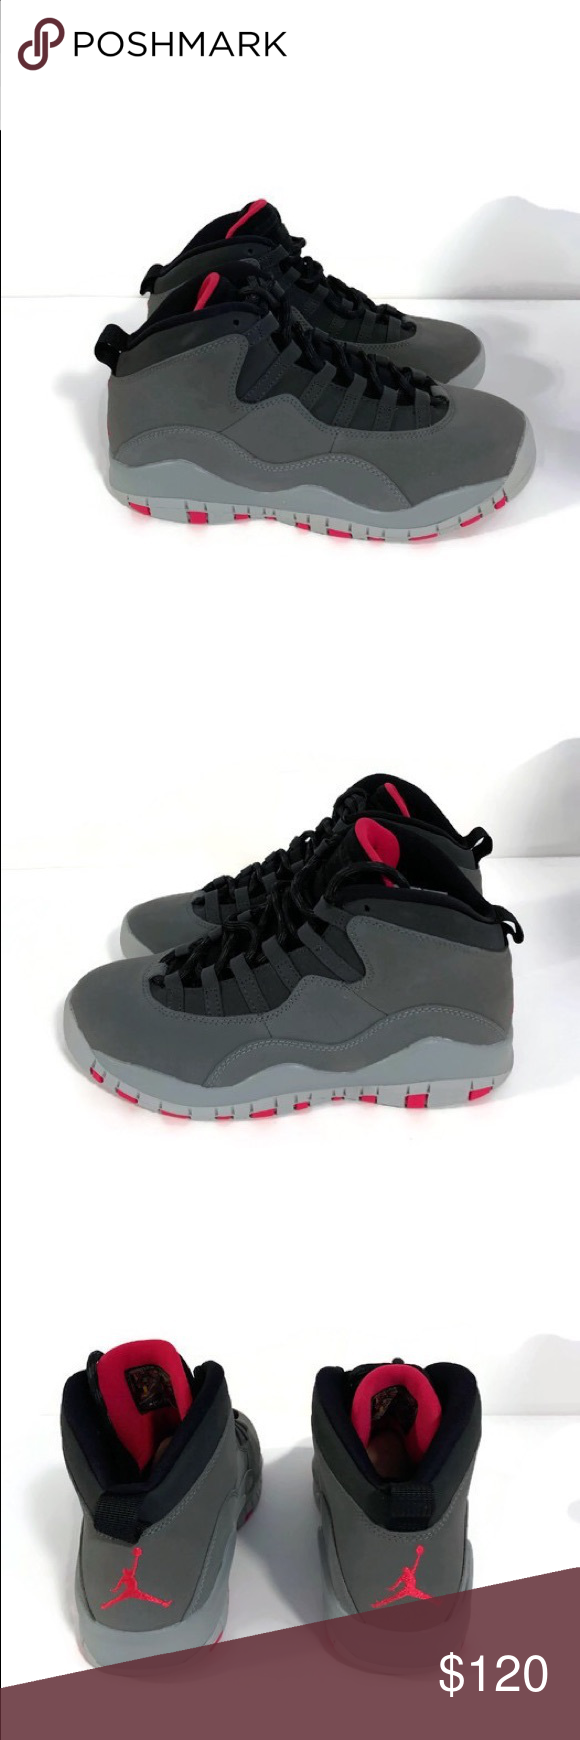 8d04483a9d95 Nike Air Jordan 10 Retro Grey   Pink Brand new in box 7Y - Women s ...